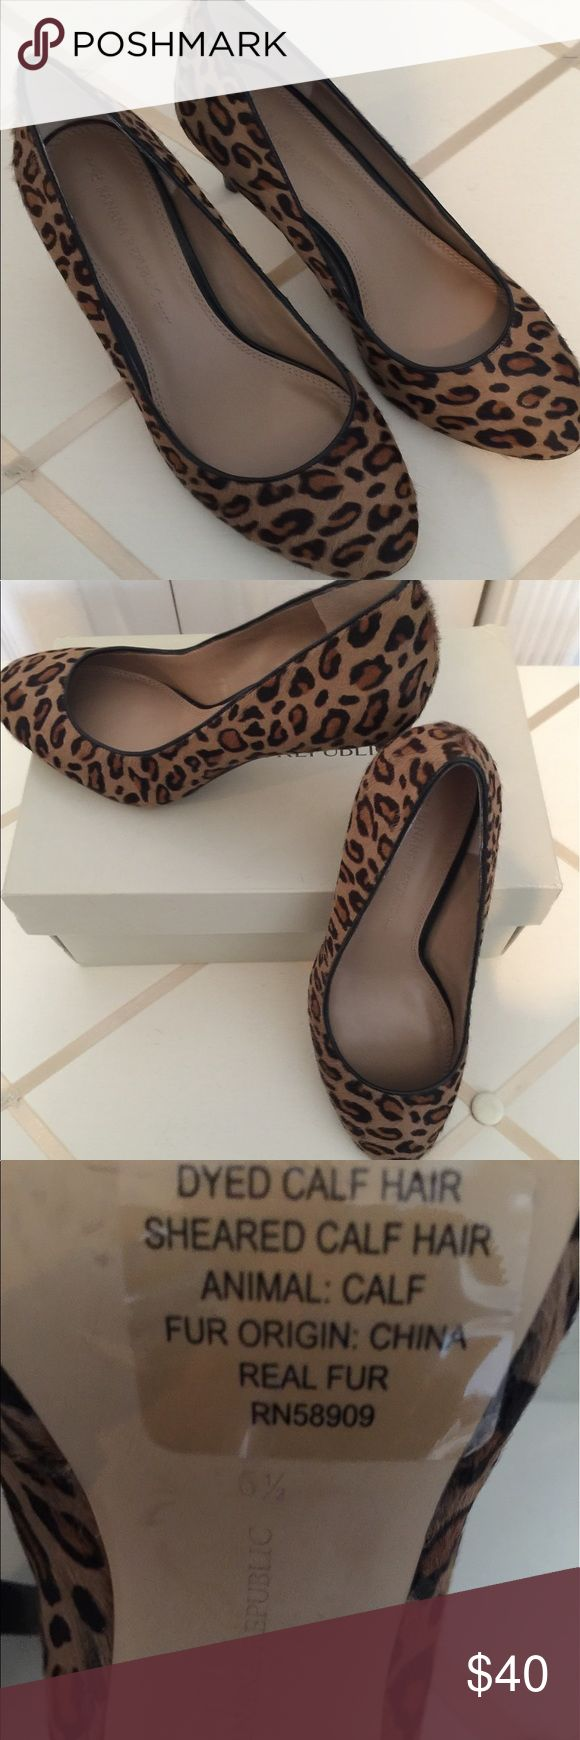 "Banana Republic real fur shoes animal print Very cute and elegant shoes. Worn twice. 2 3/4"" heel. Excellent condition. Banana Republic Shoes Heels"